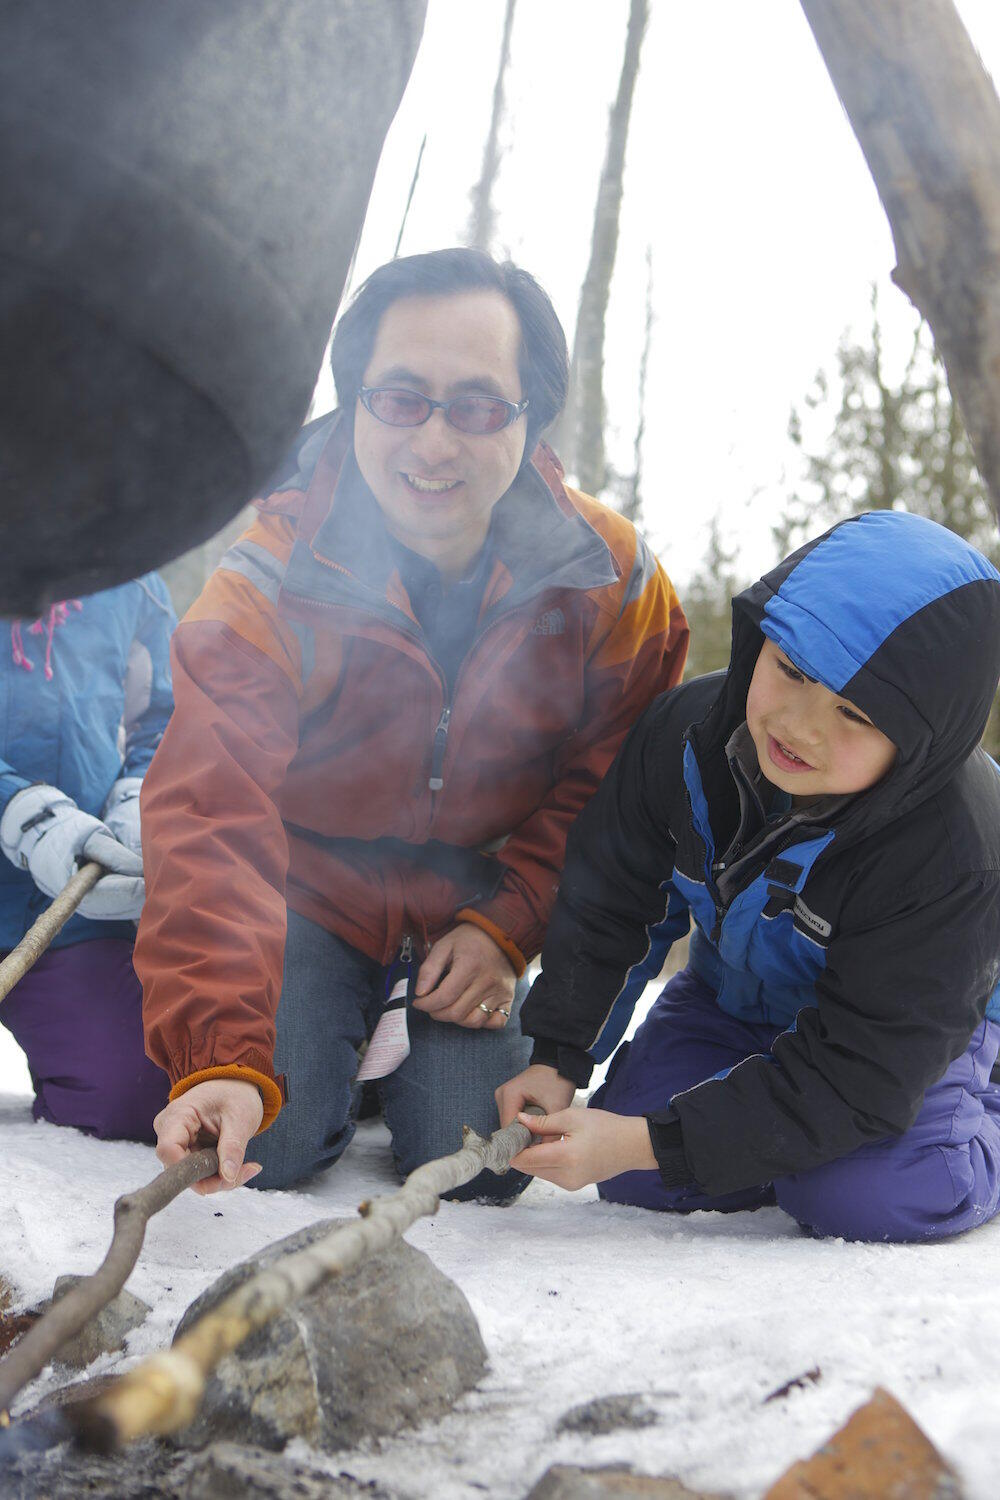 Man and son cooking bannock over fire.